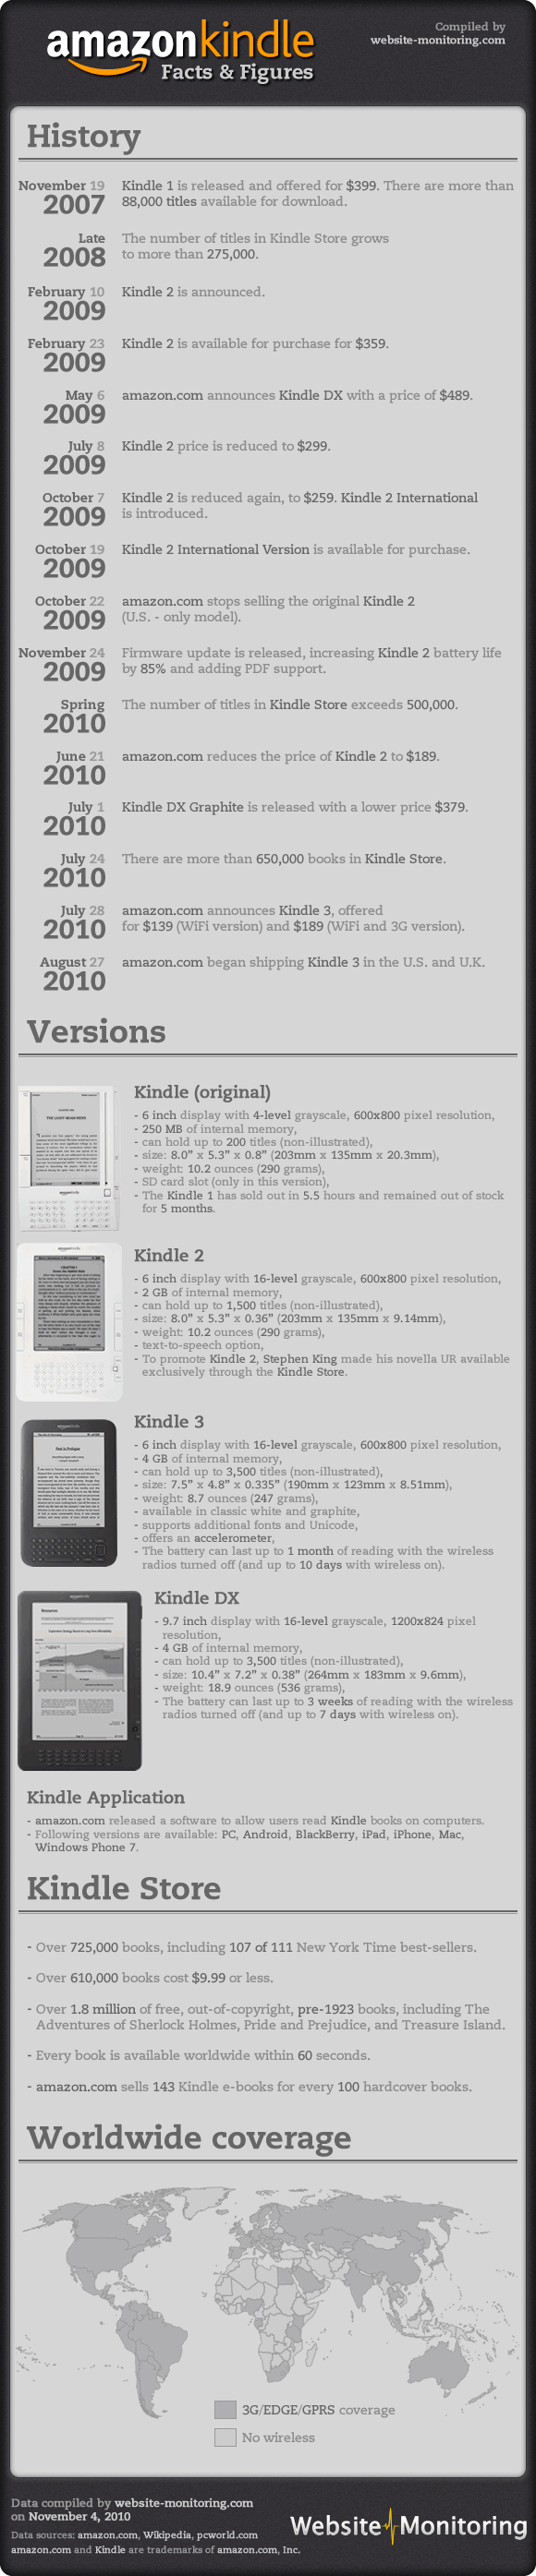 Amazon Kindle - Facts and Figures (PNG)